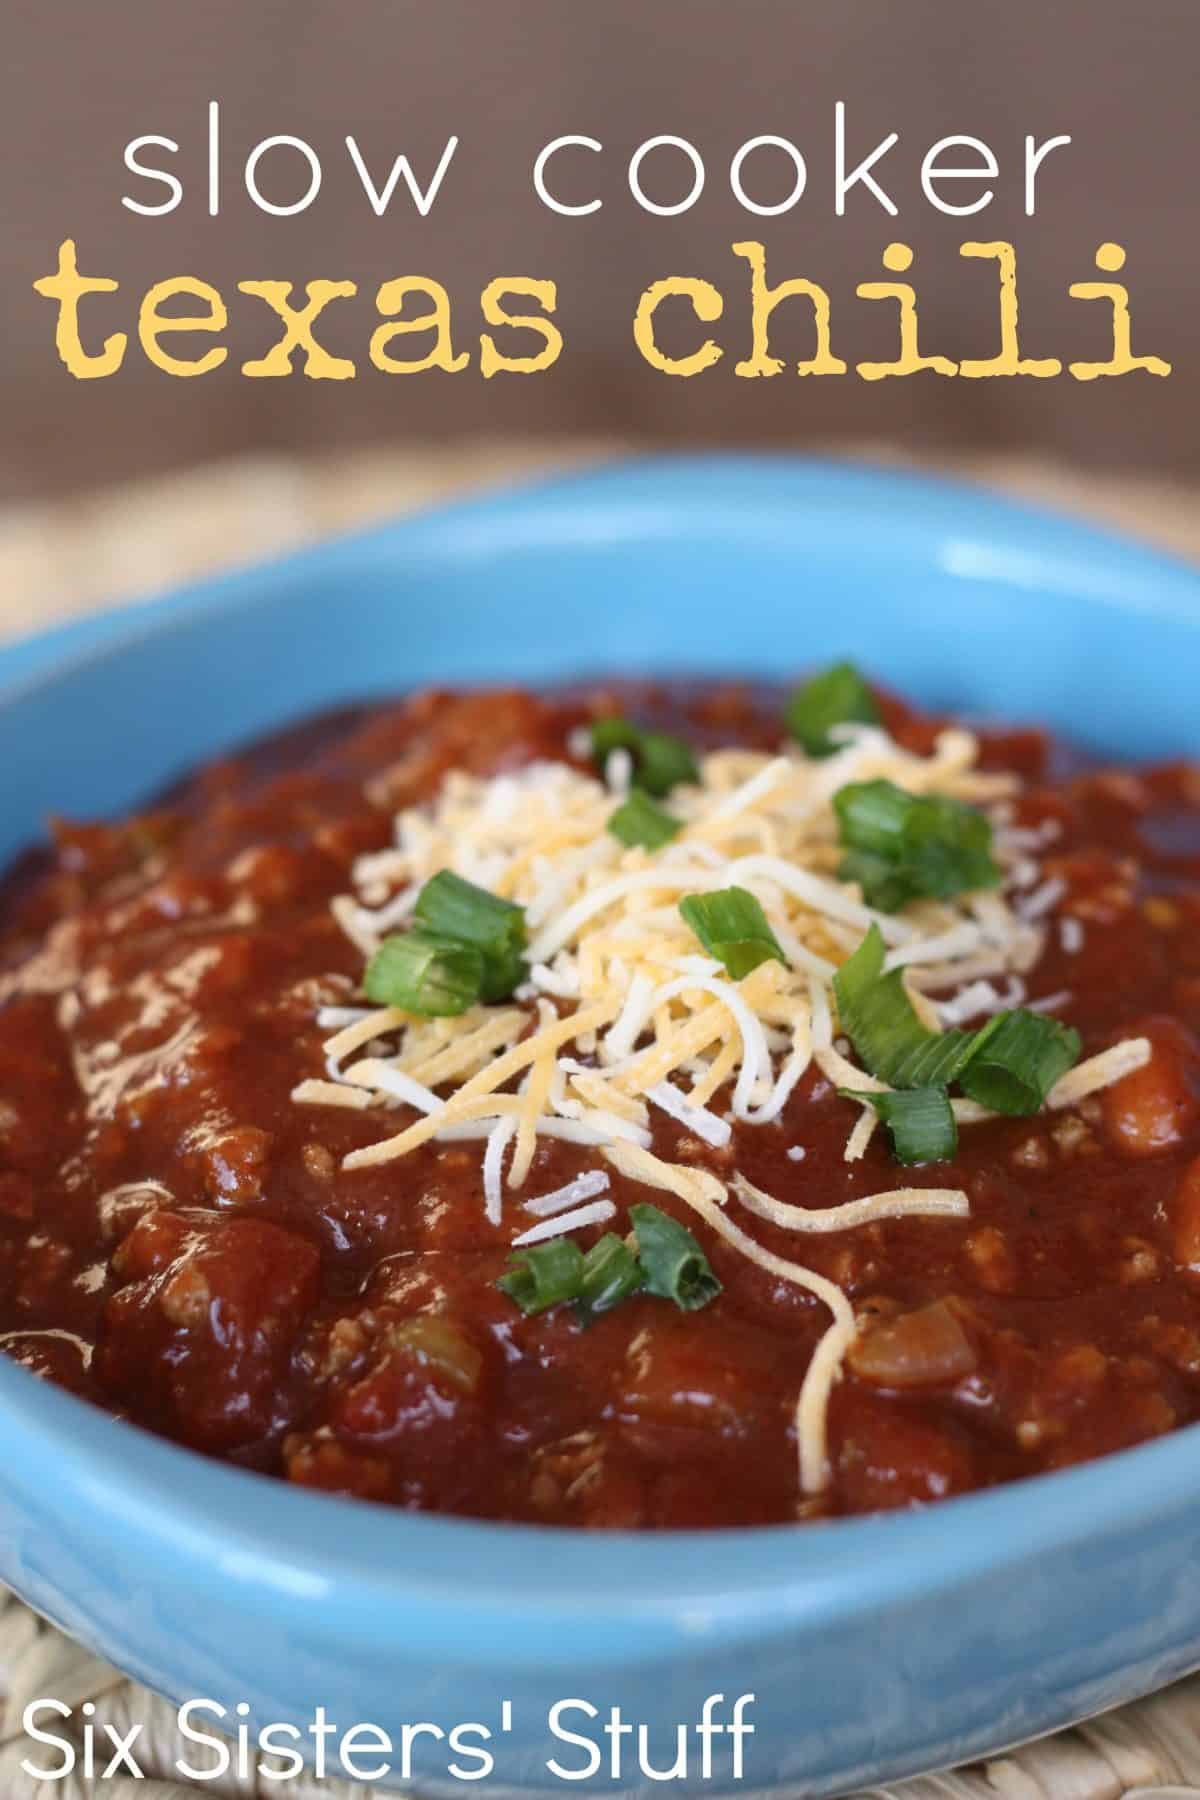 Slow cooker Texas chilli